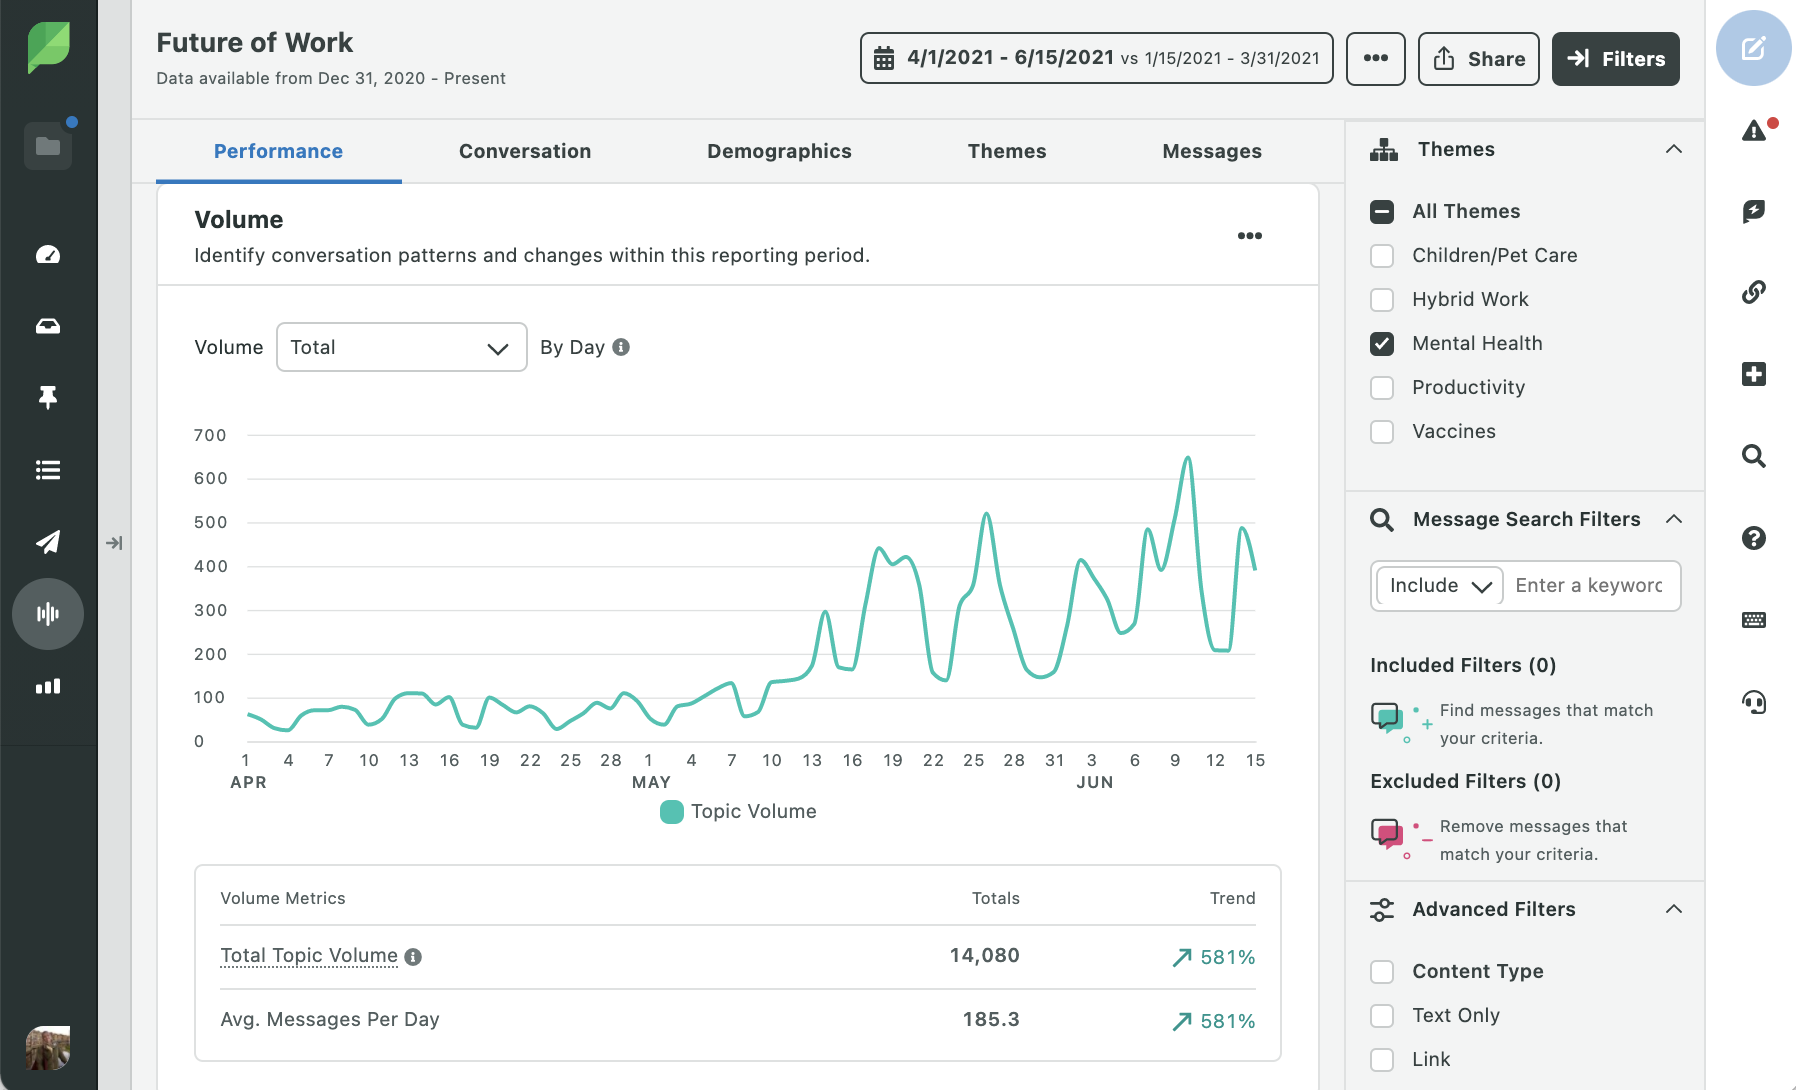 Through Sprout Social social listening feature, tracking the topic volume of the future of work